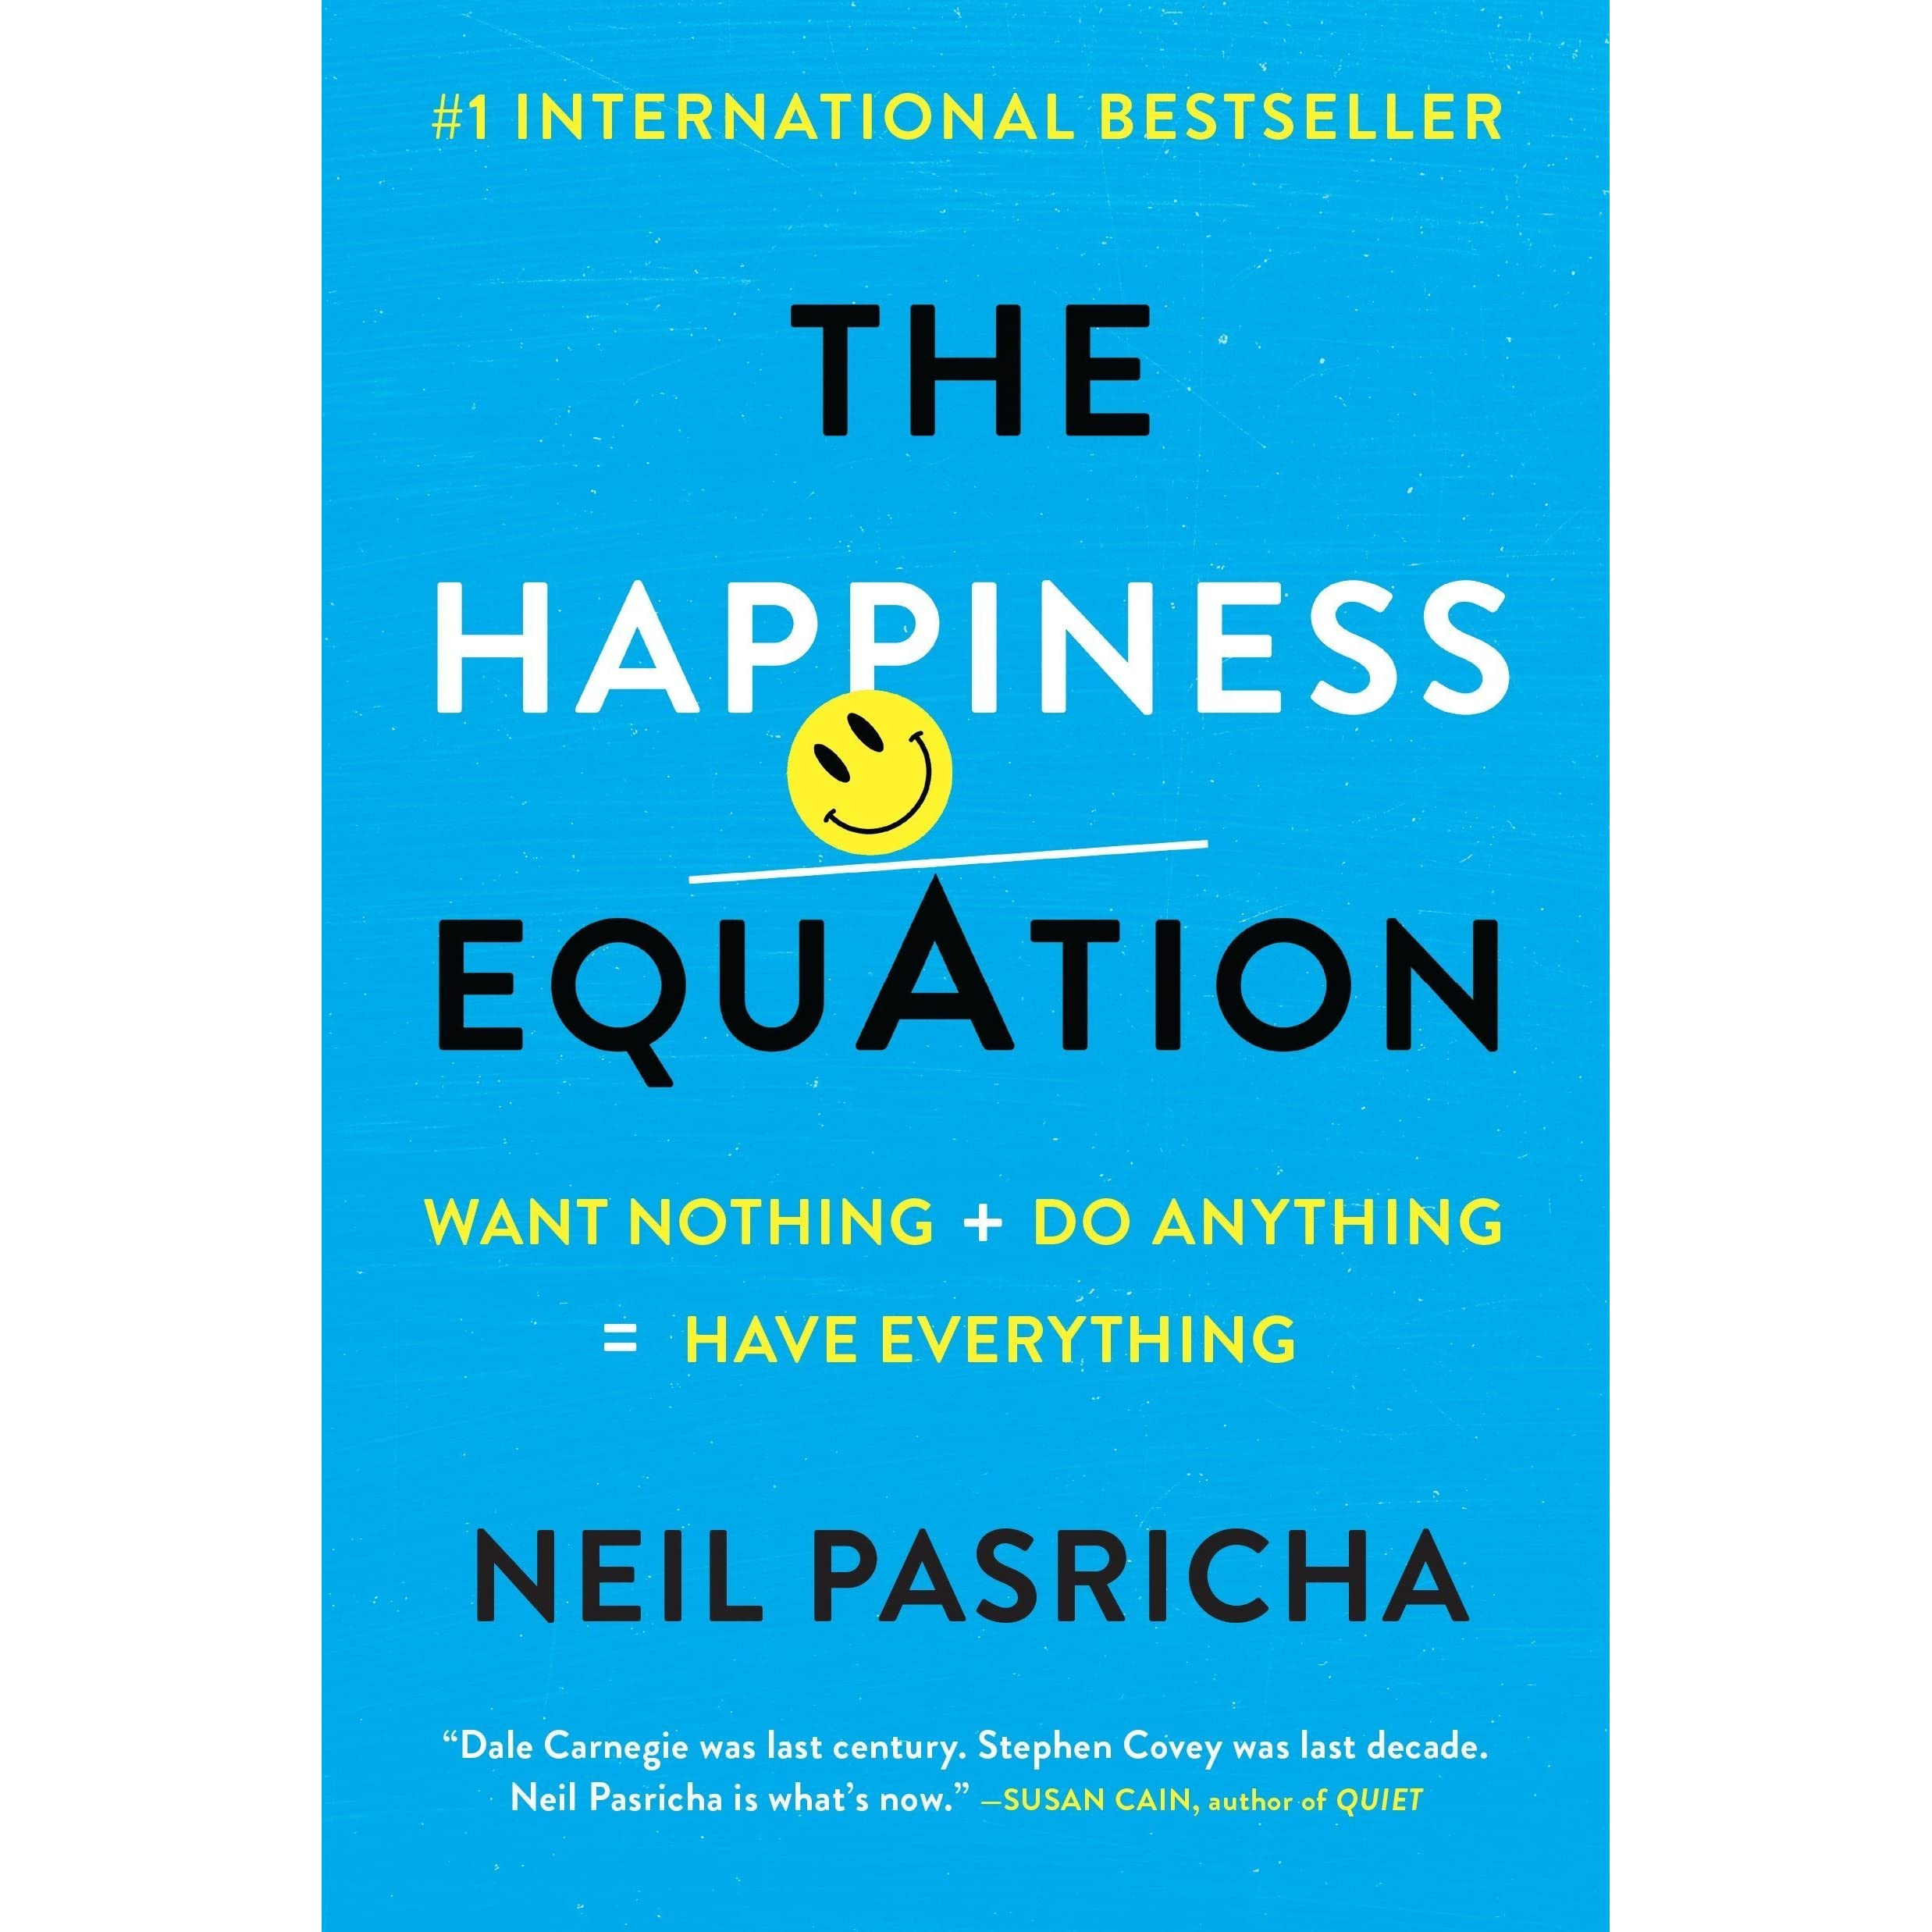 the happiness equation want nothing do anything have